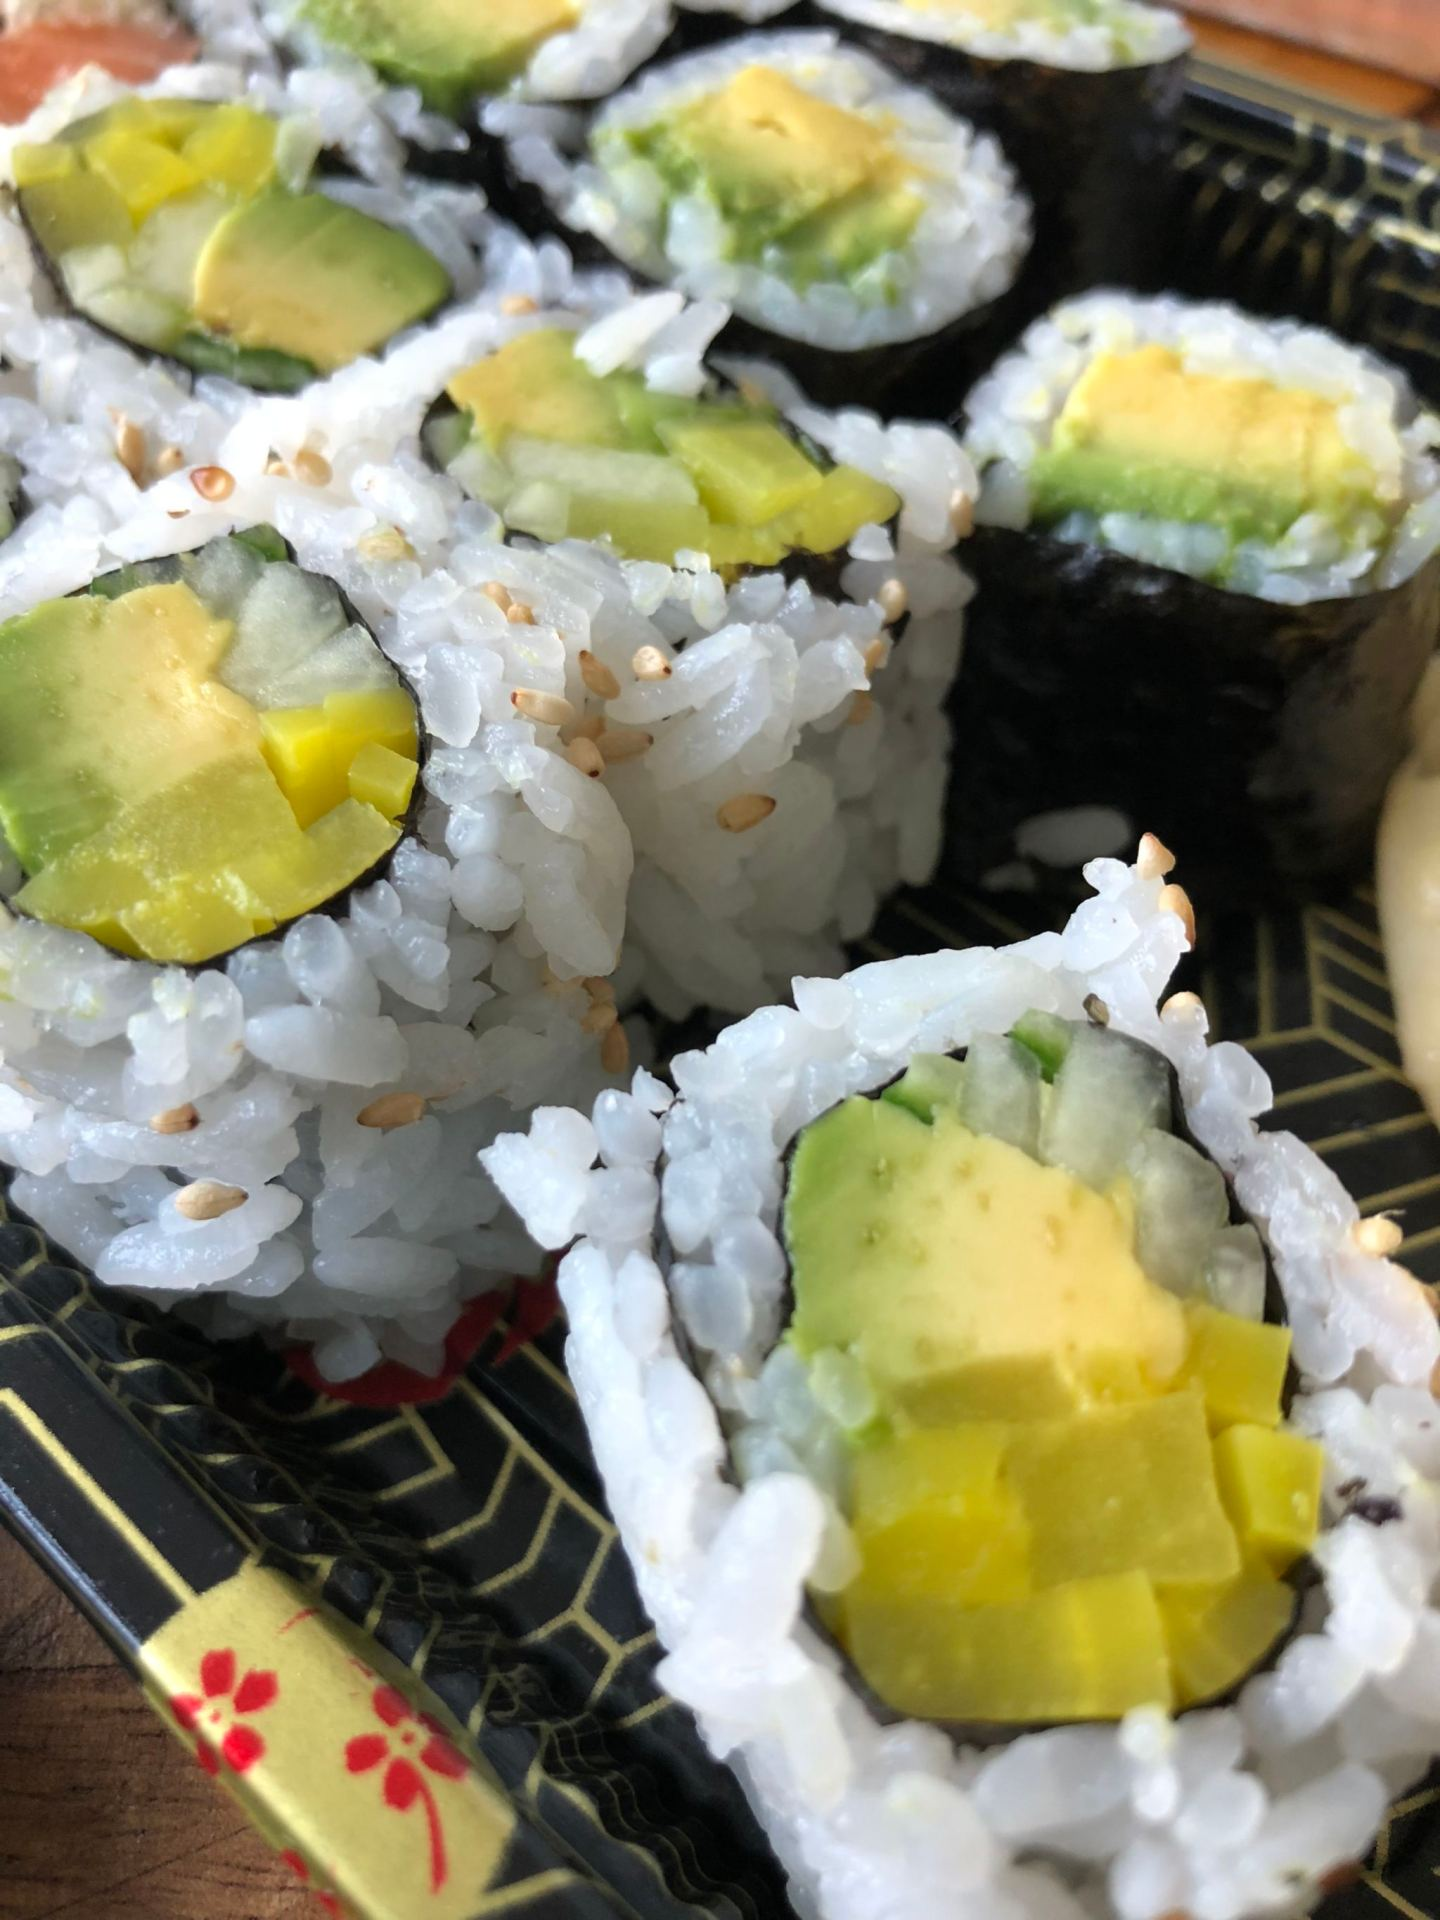 Avocado rolls - How Going Vegan Changed My Life - YesIMadeMyDress